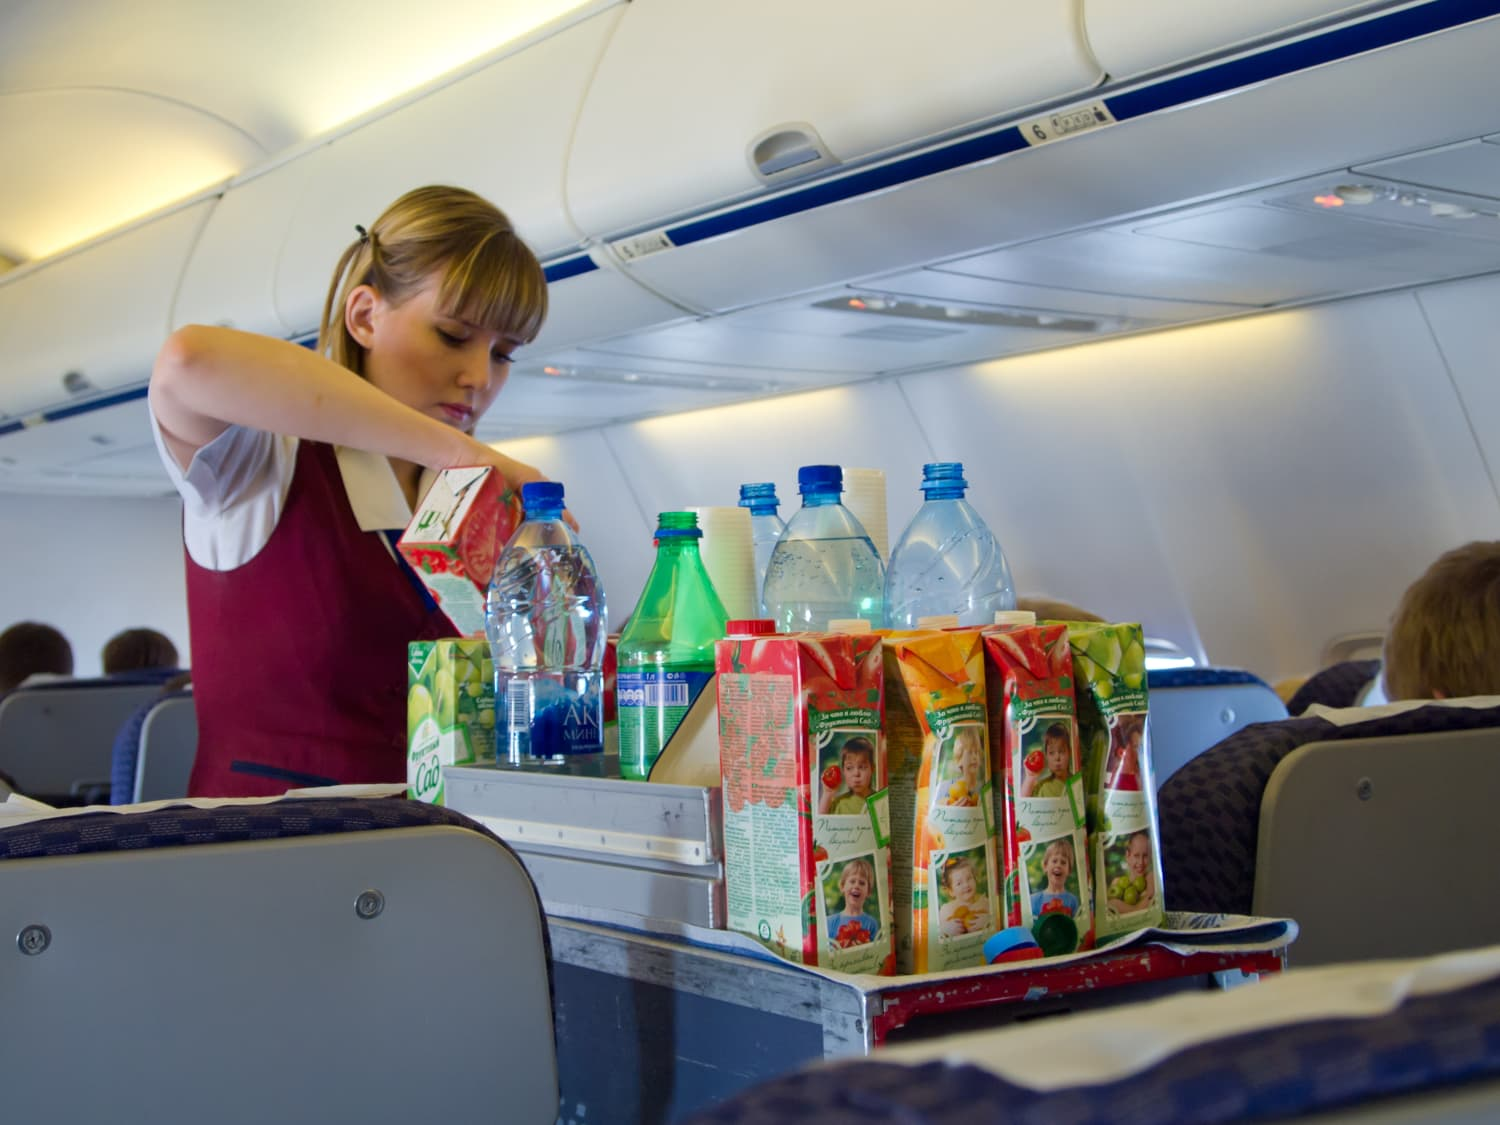 Flight Attendants Share Their Best Tips for Making the Most of a Small Kitchen